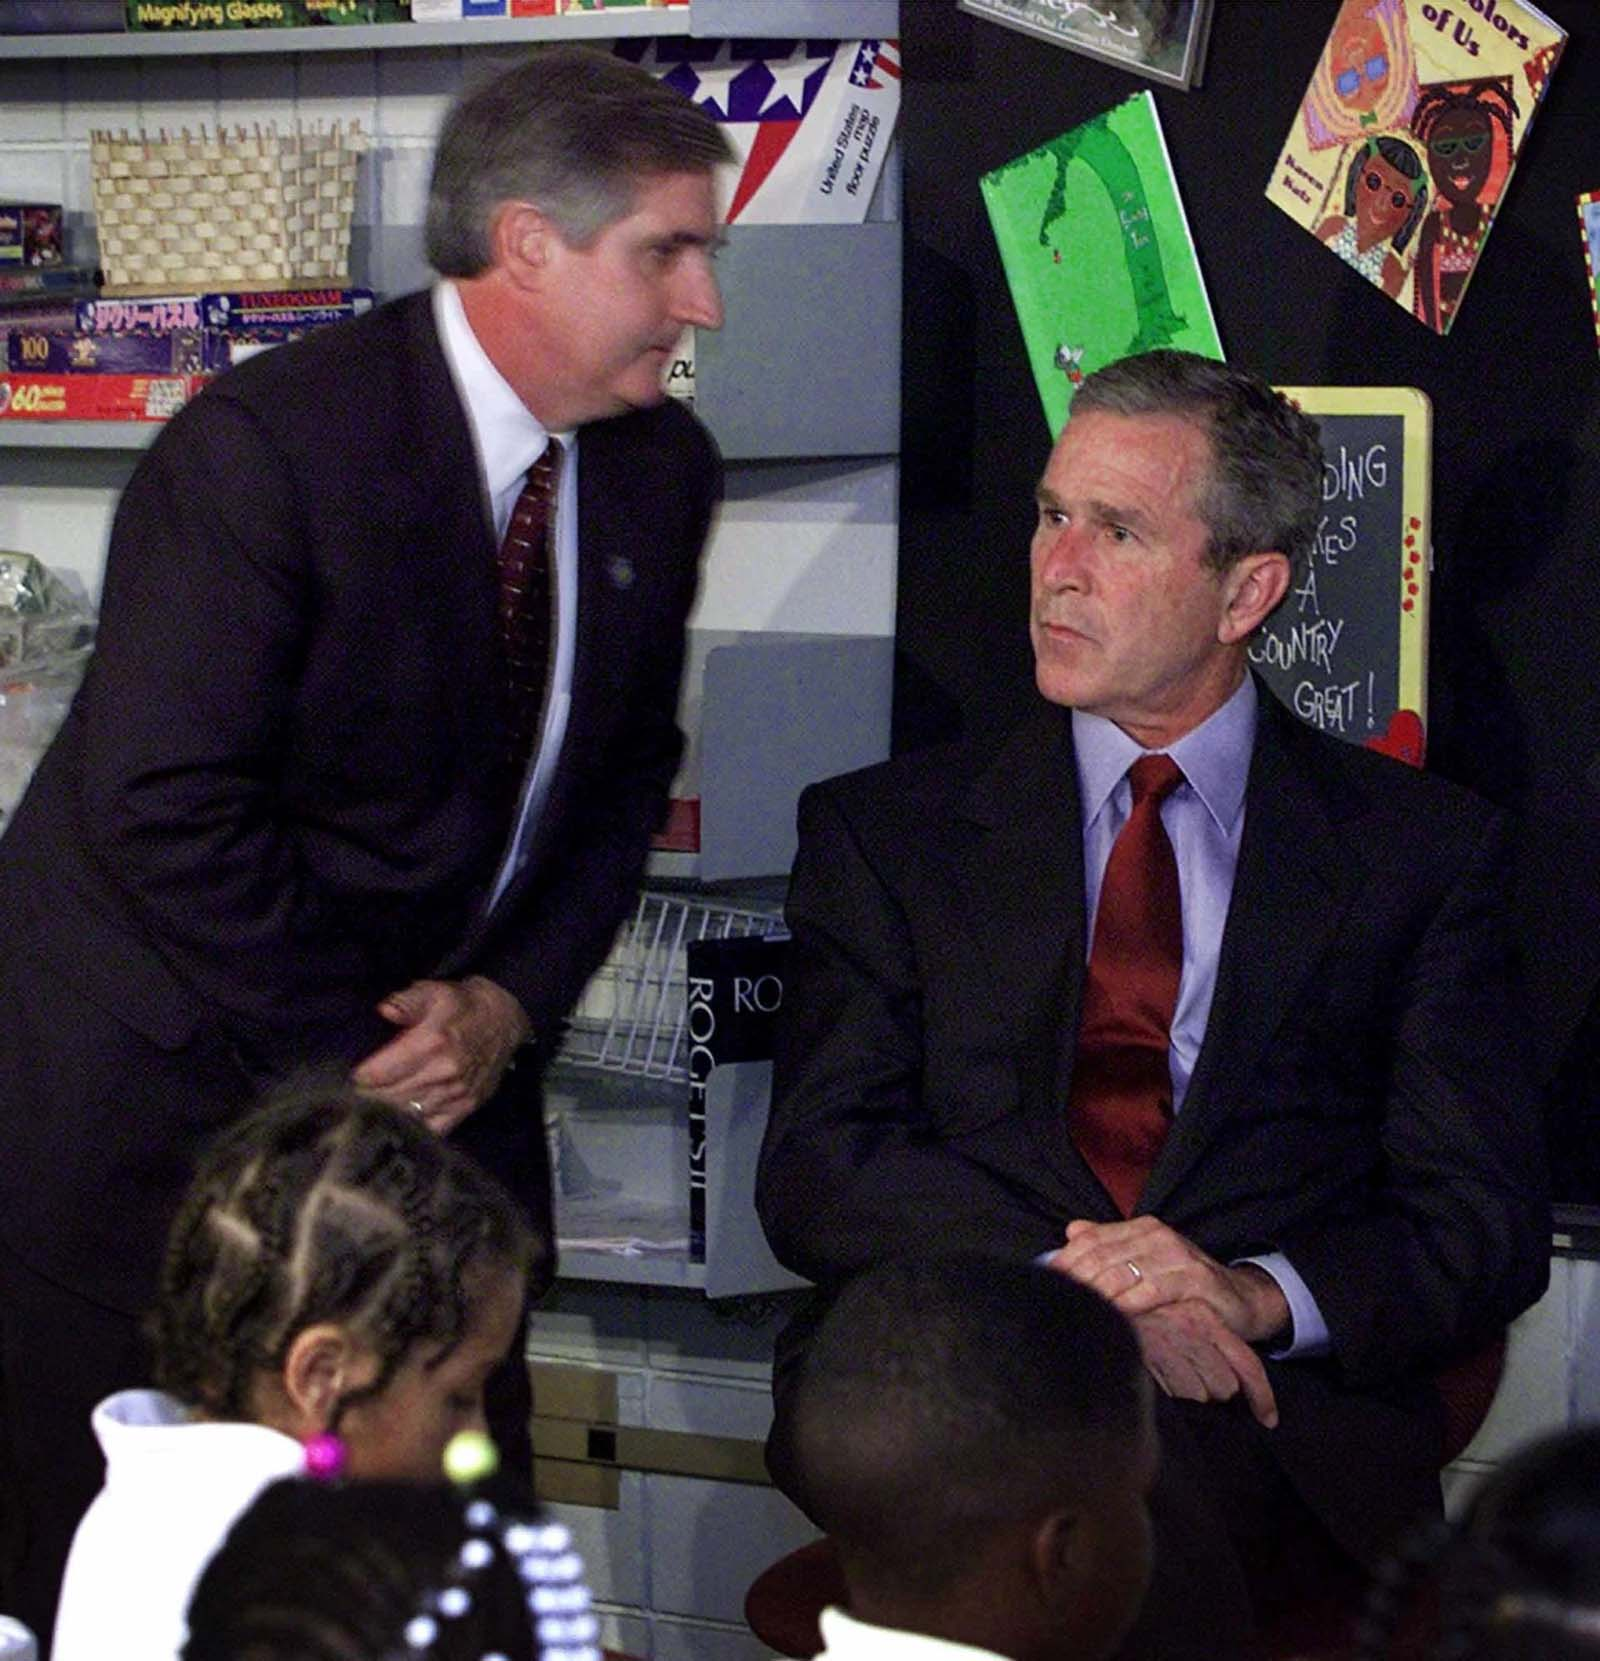 president bush informed 9-11 attack photo